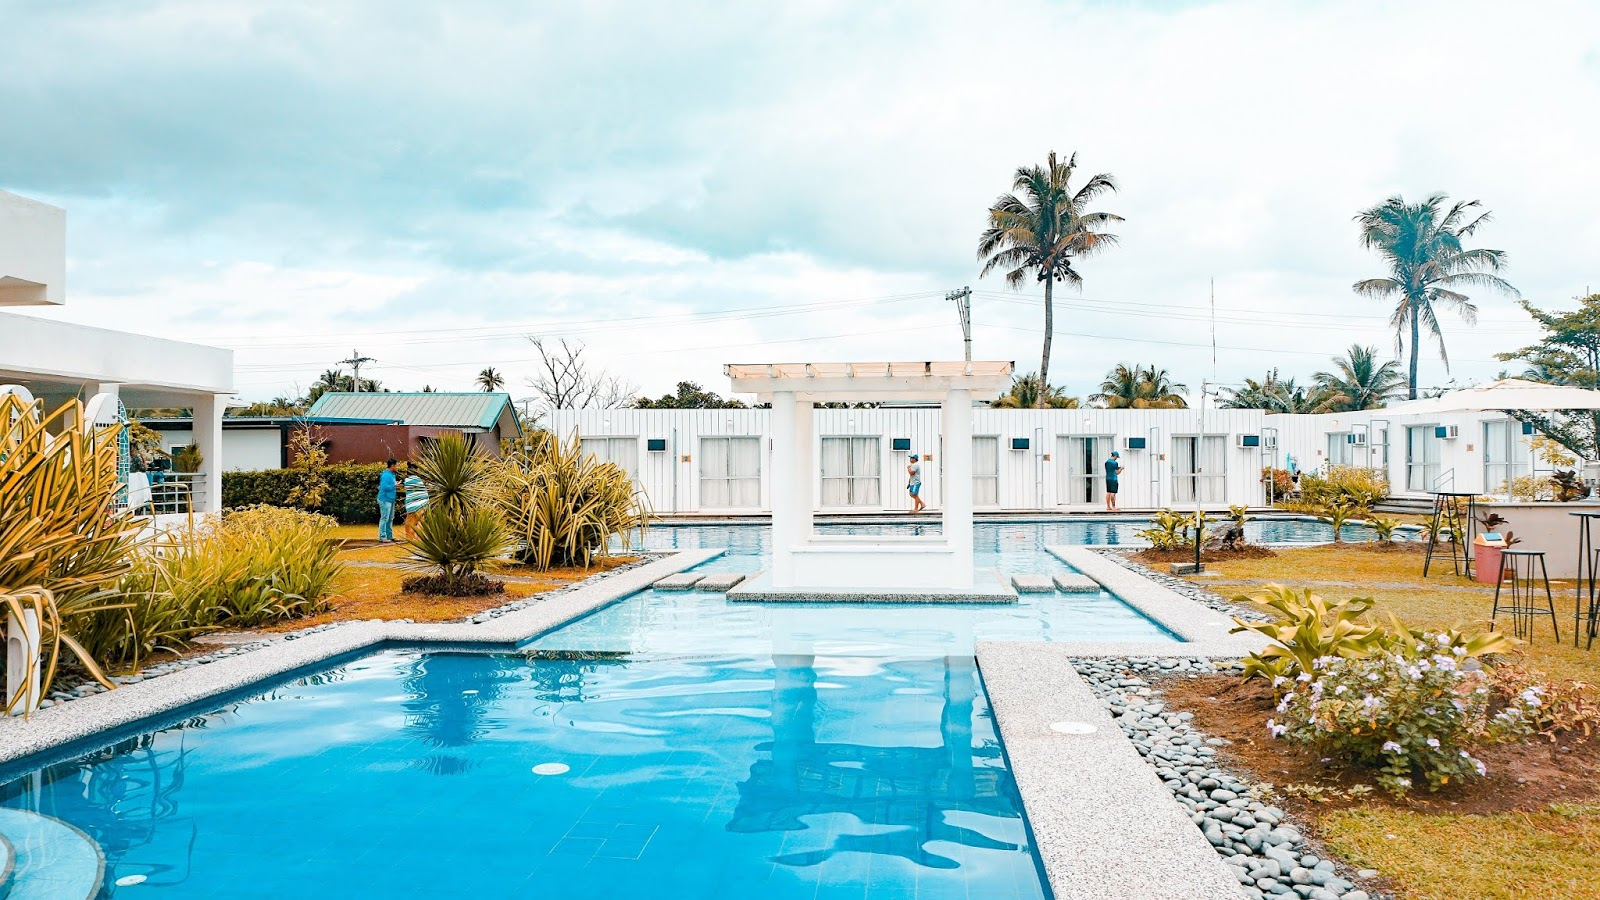 Resort with swimming pool in Baler, Aurora